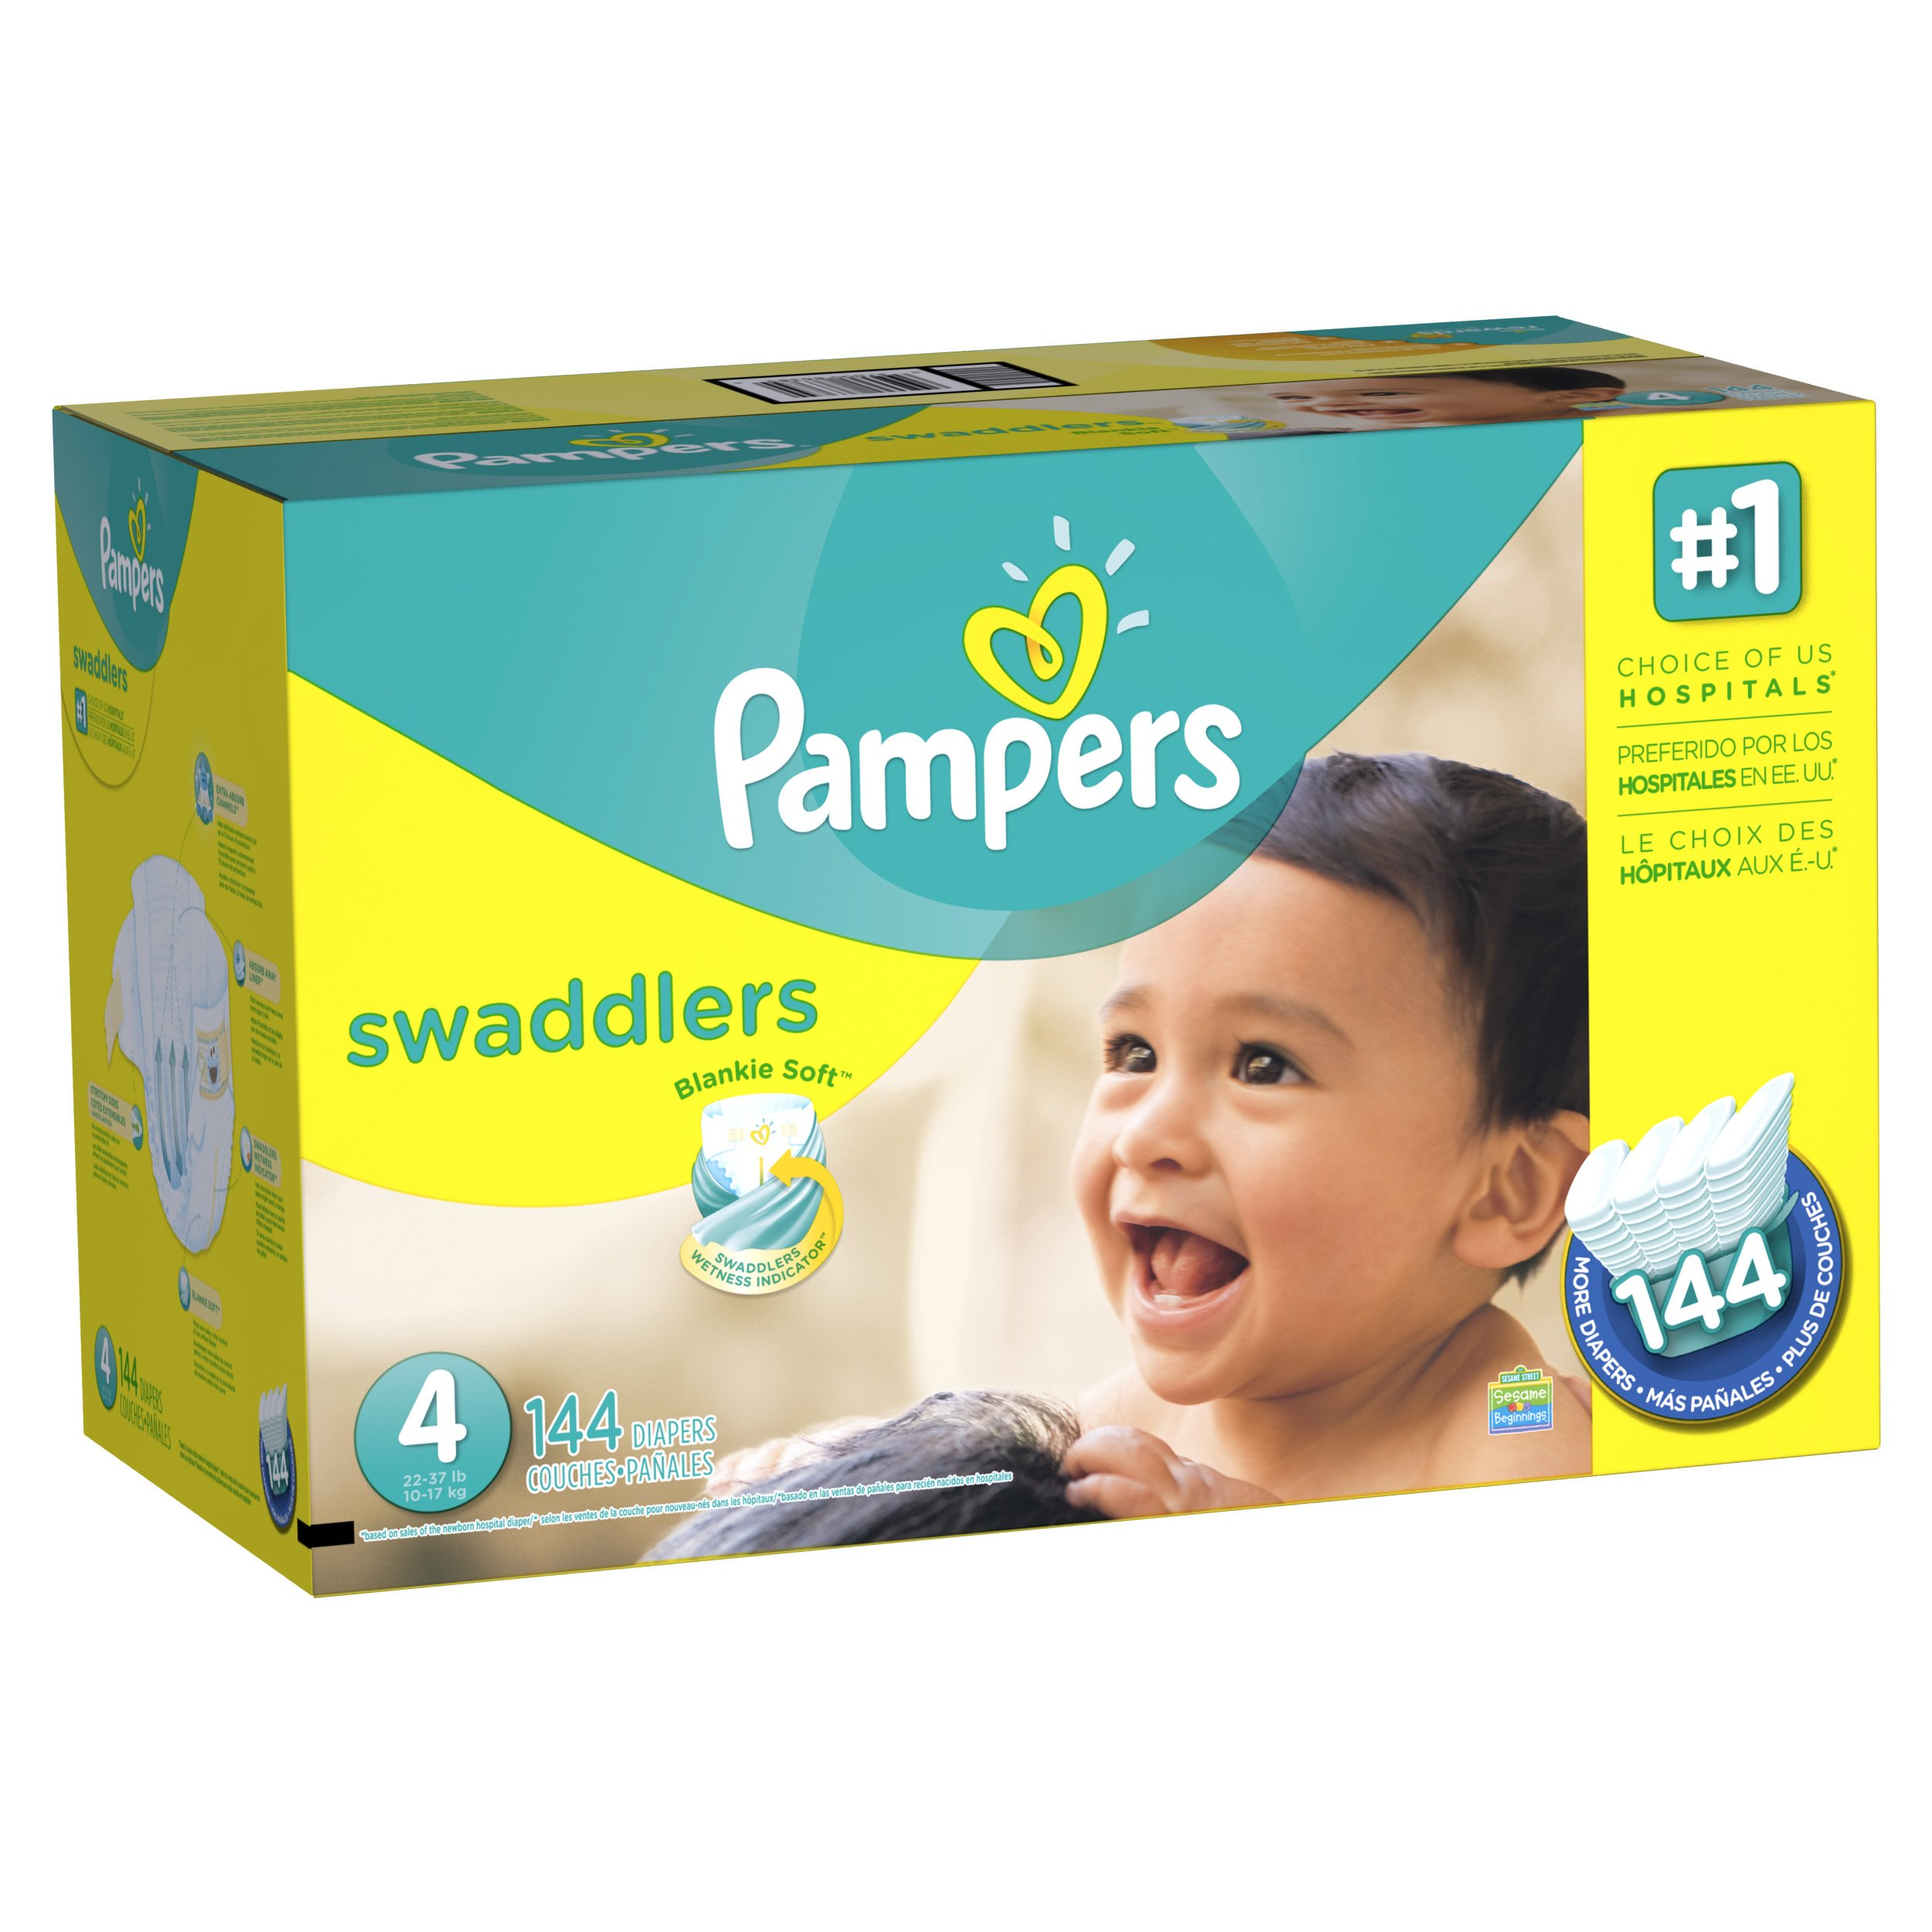 Pampers Swaddlers Diapers Size 4 144 Count (old version) (Packaging May Vary) by Pampers